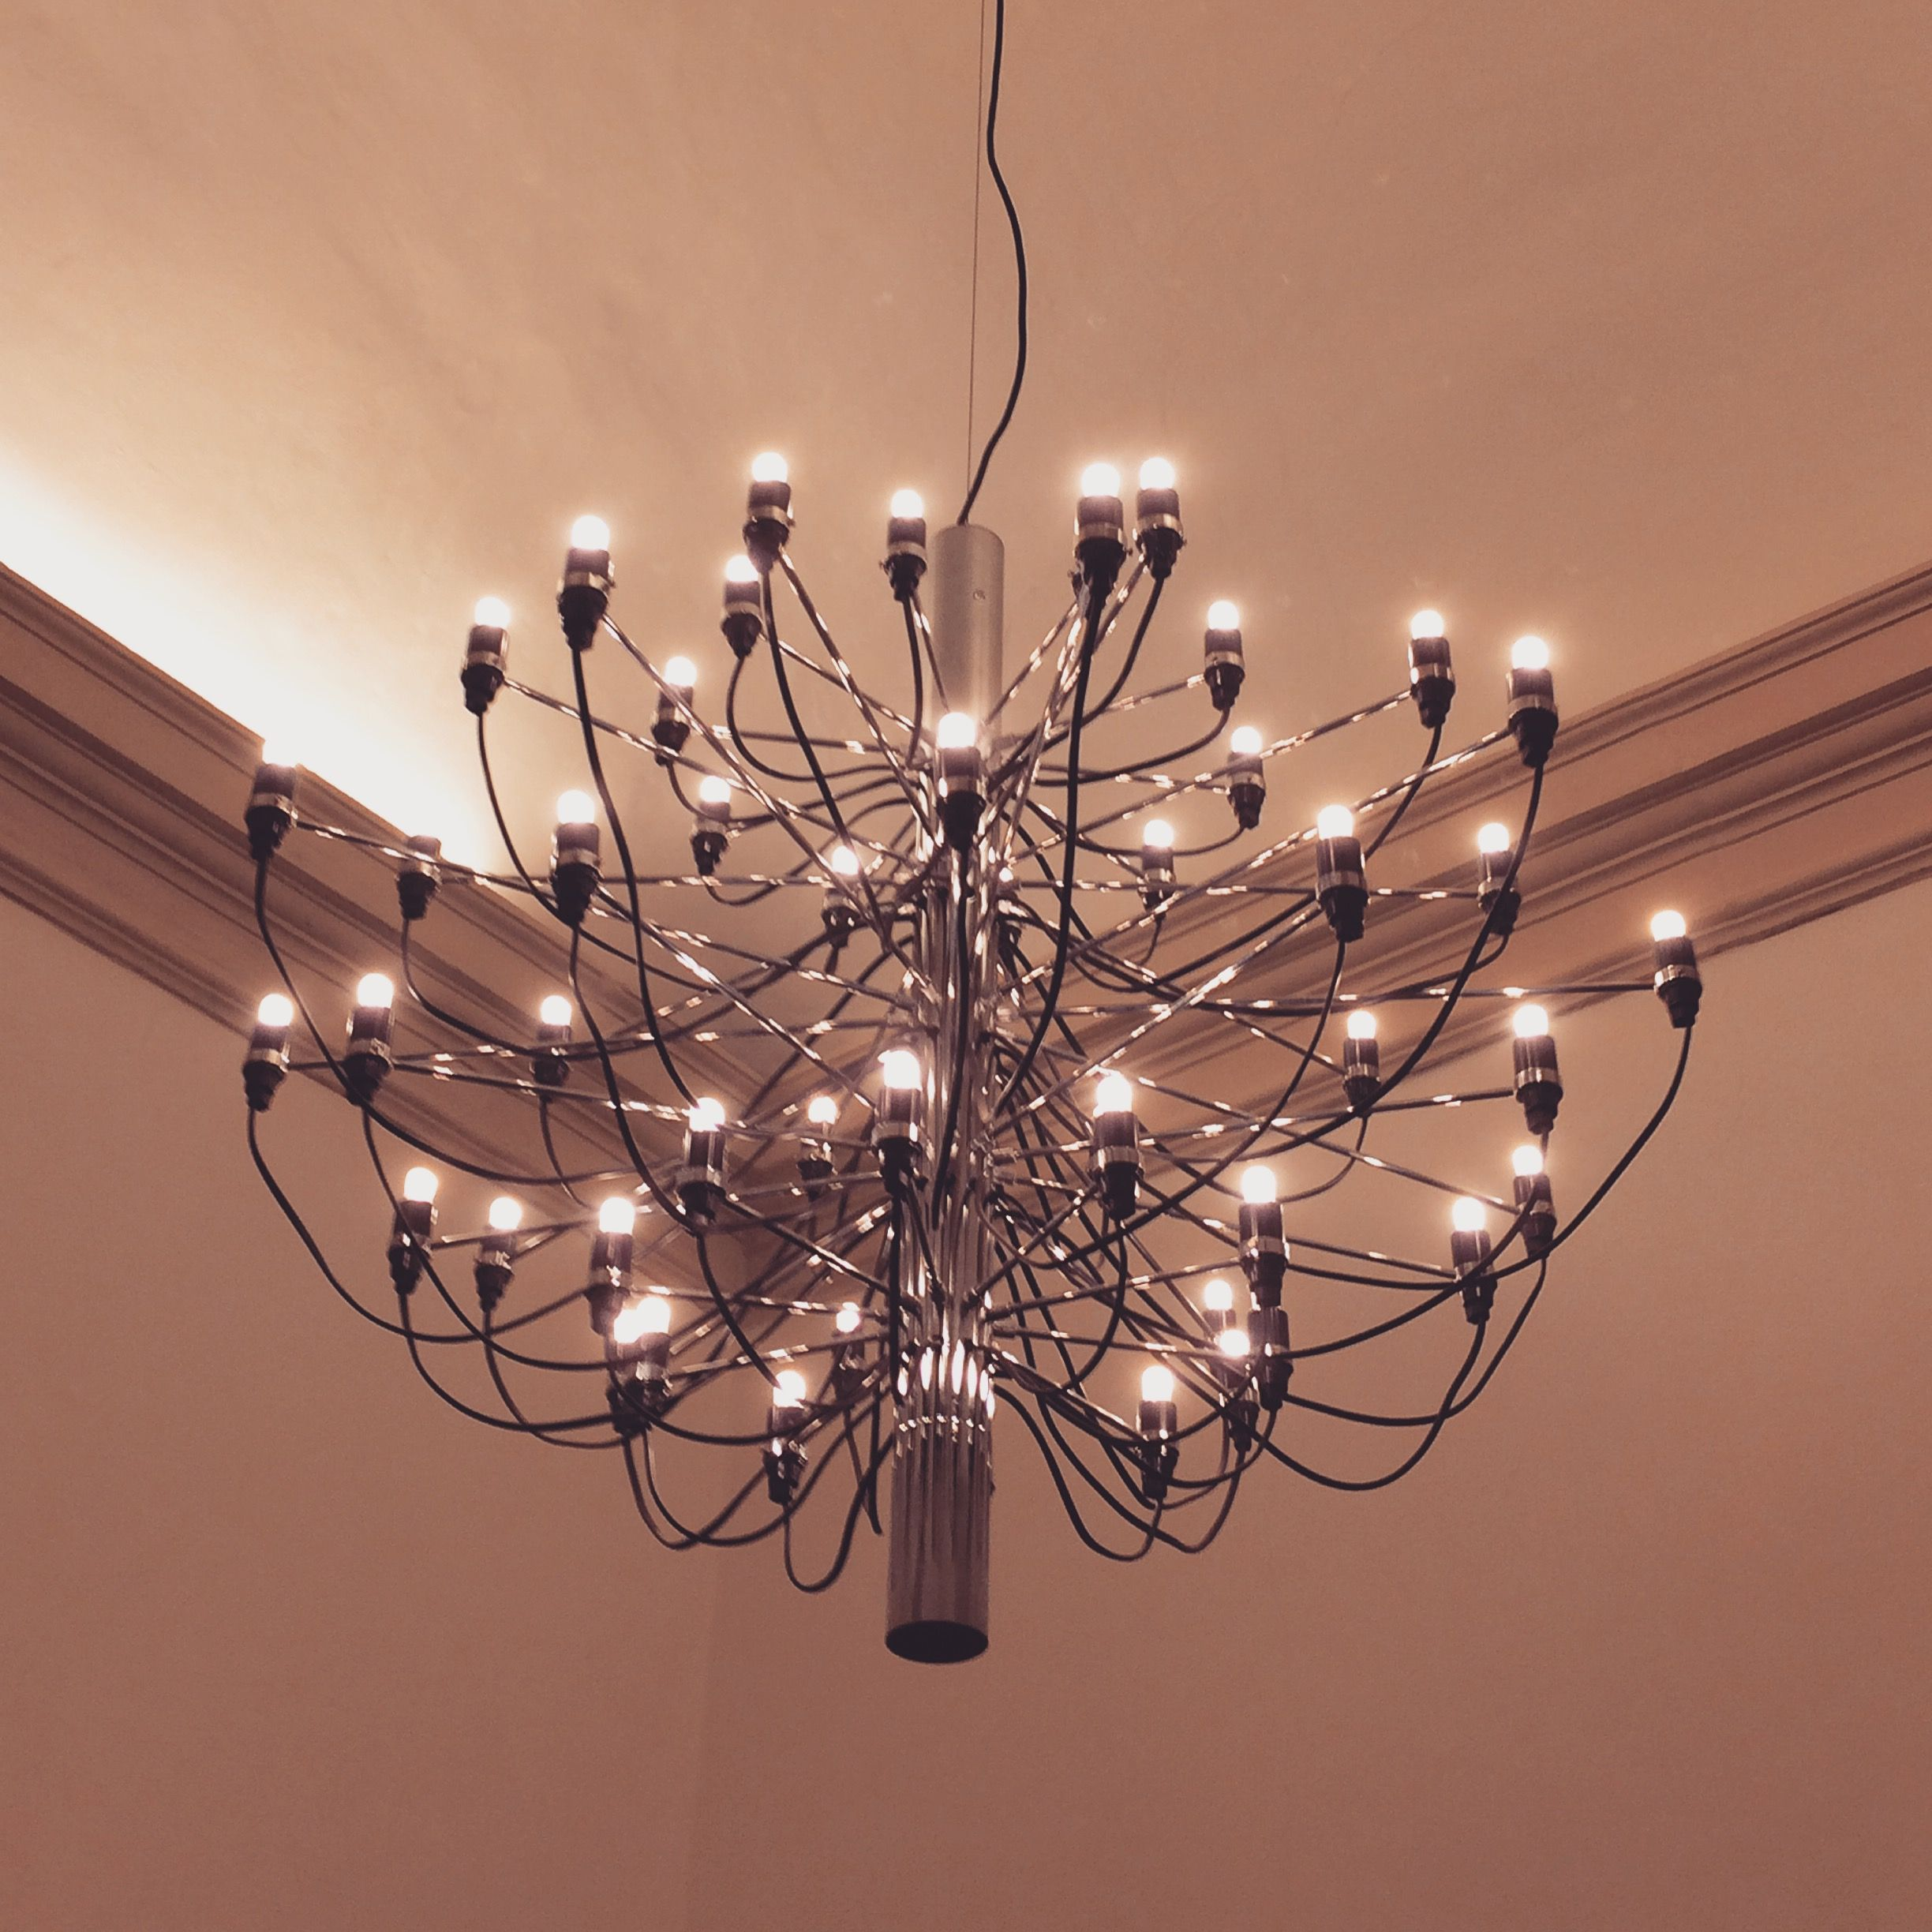 Gino Sarfatti's chandelier (designed in 1958) in a 18th century's 6 meters high italian room